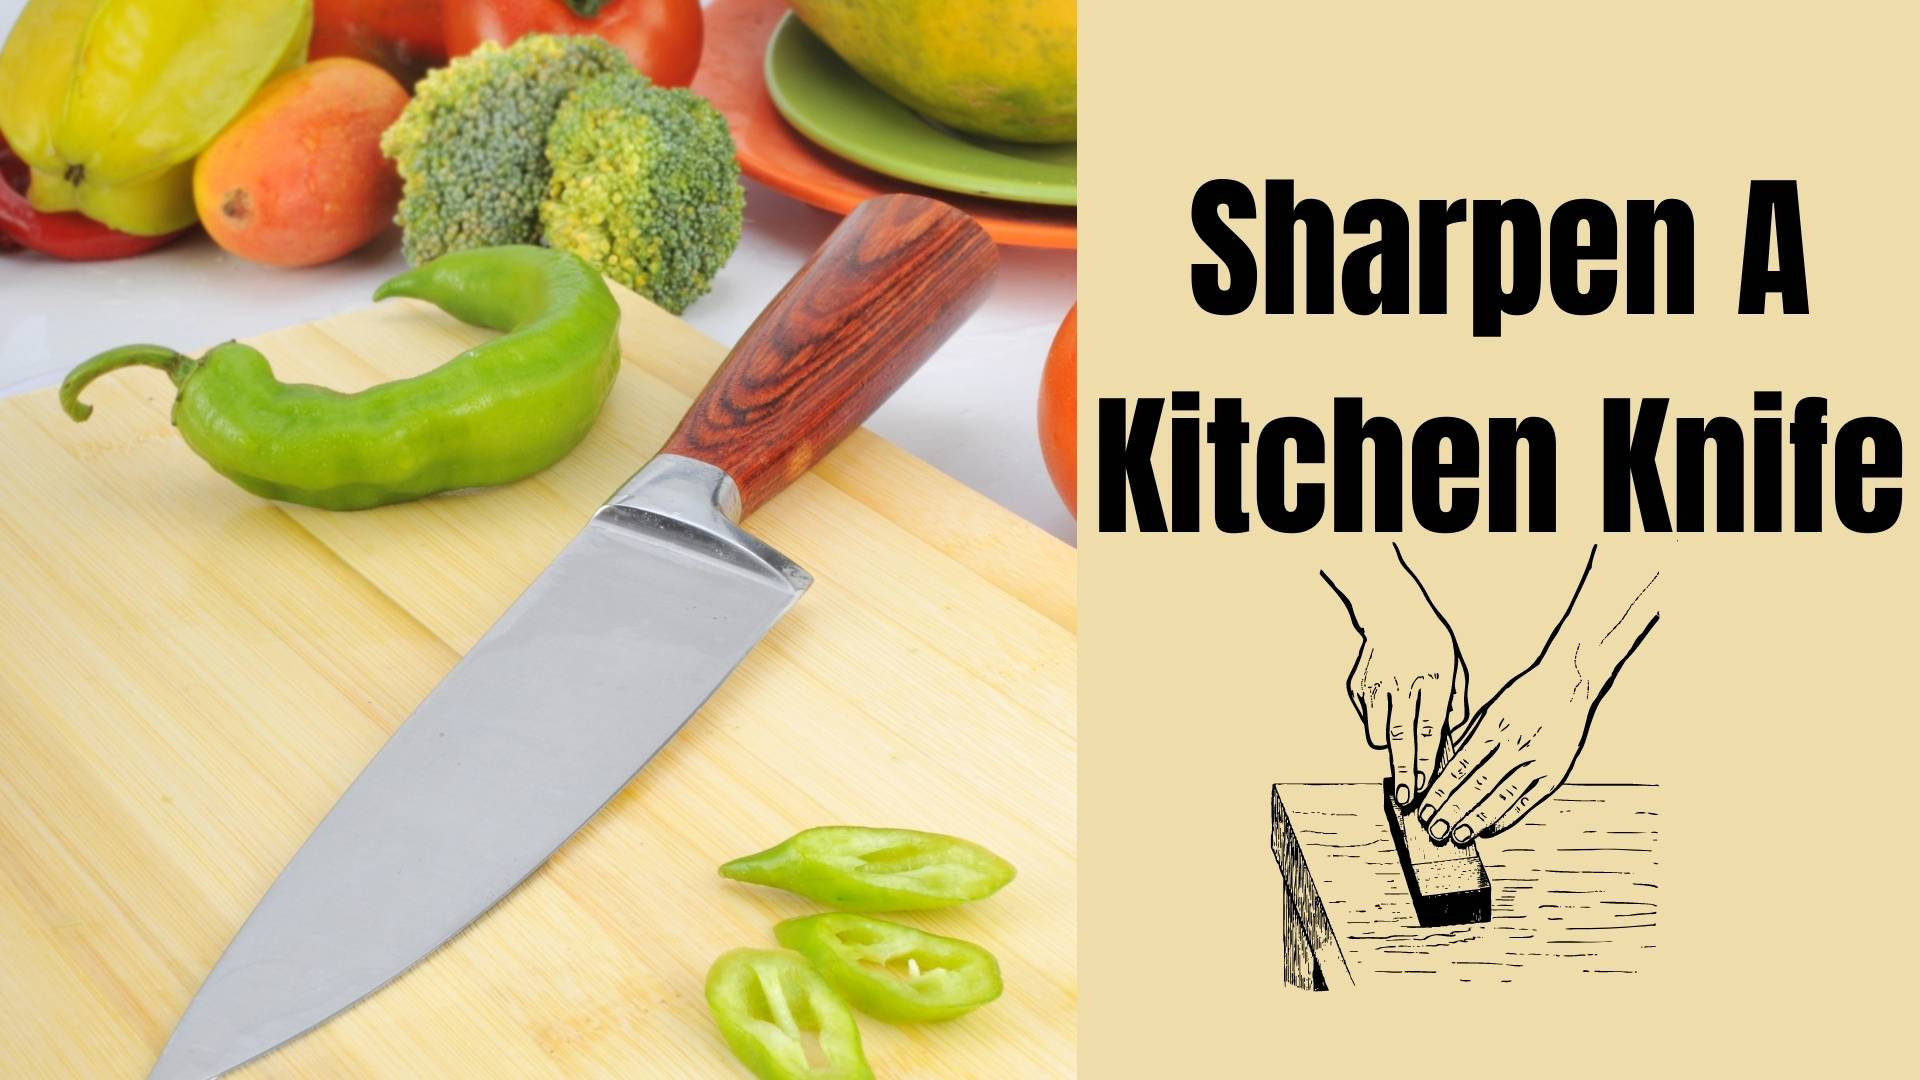 How To Sharpen A Kitchen Knife (Update 2021)